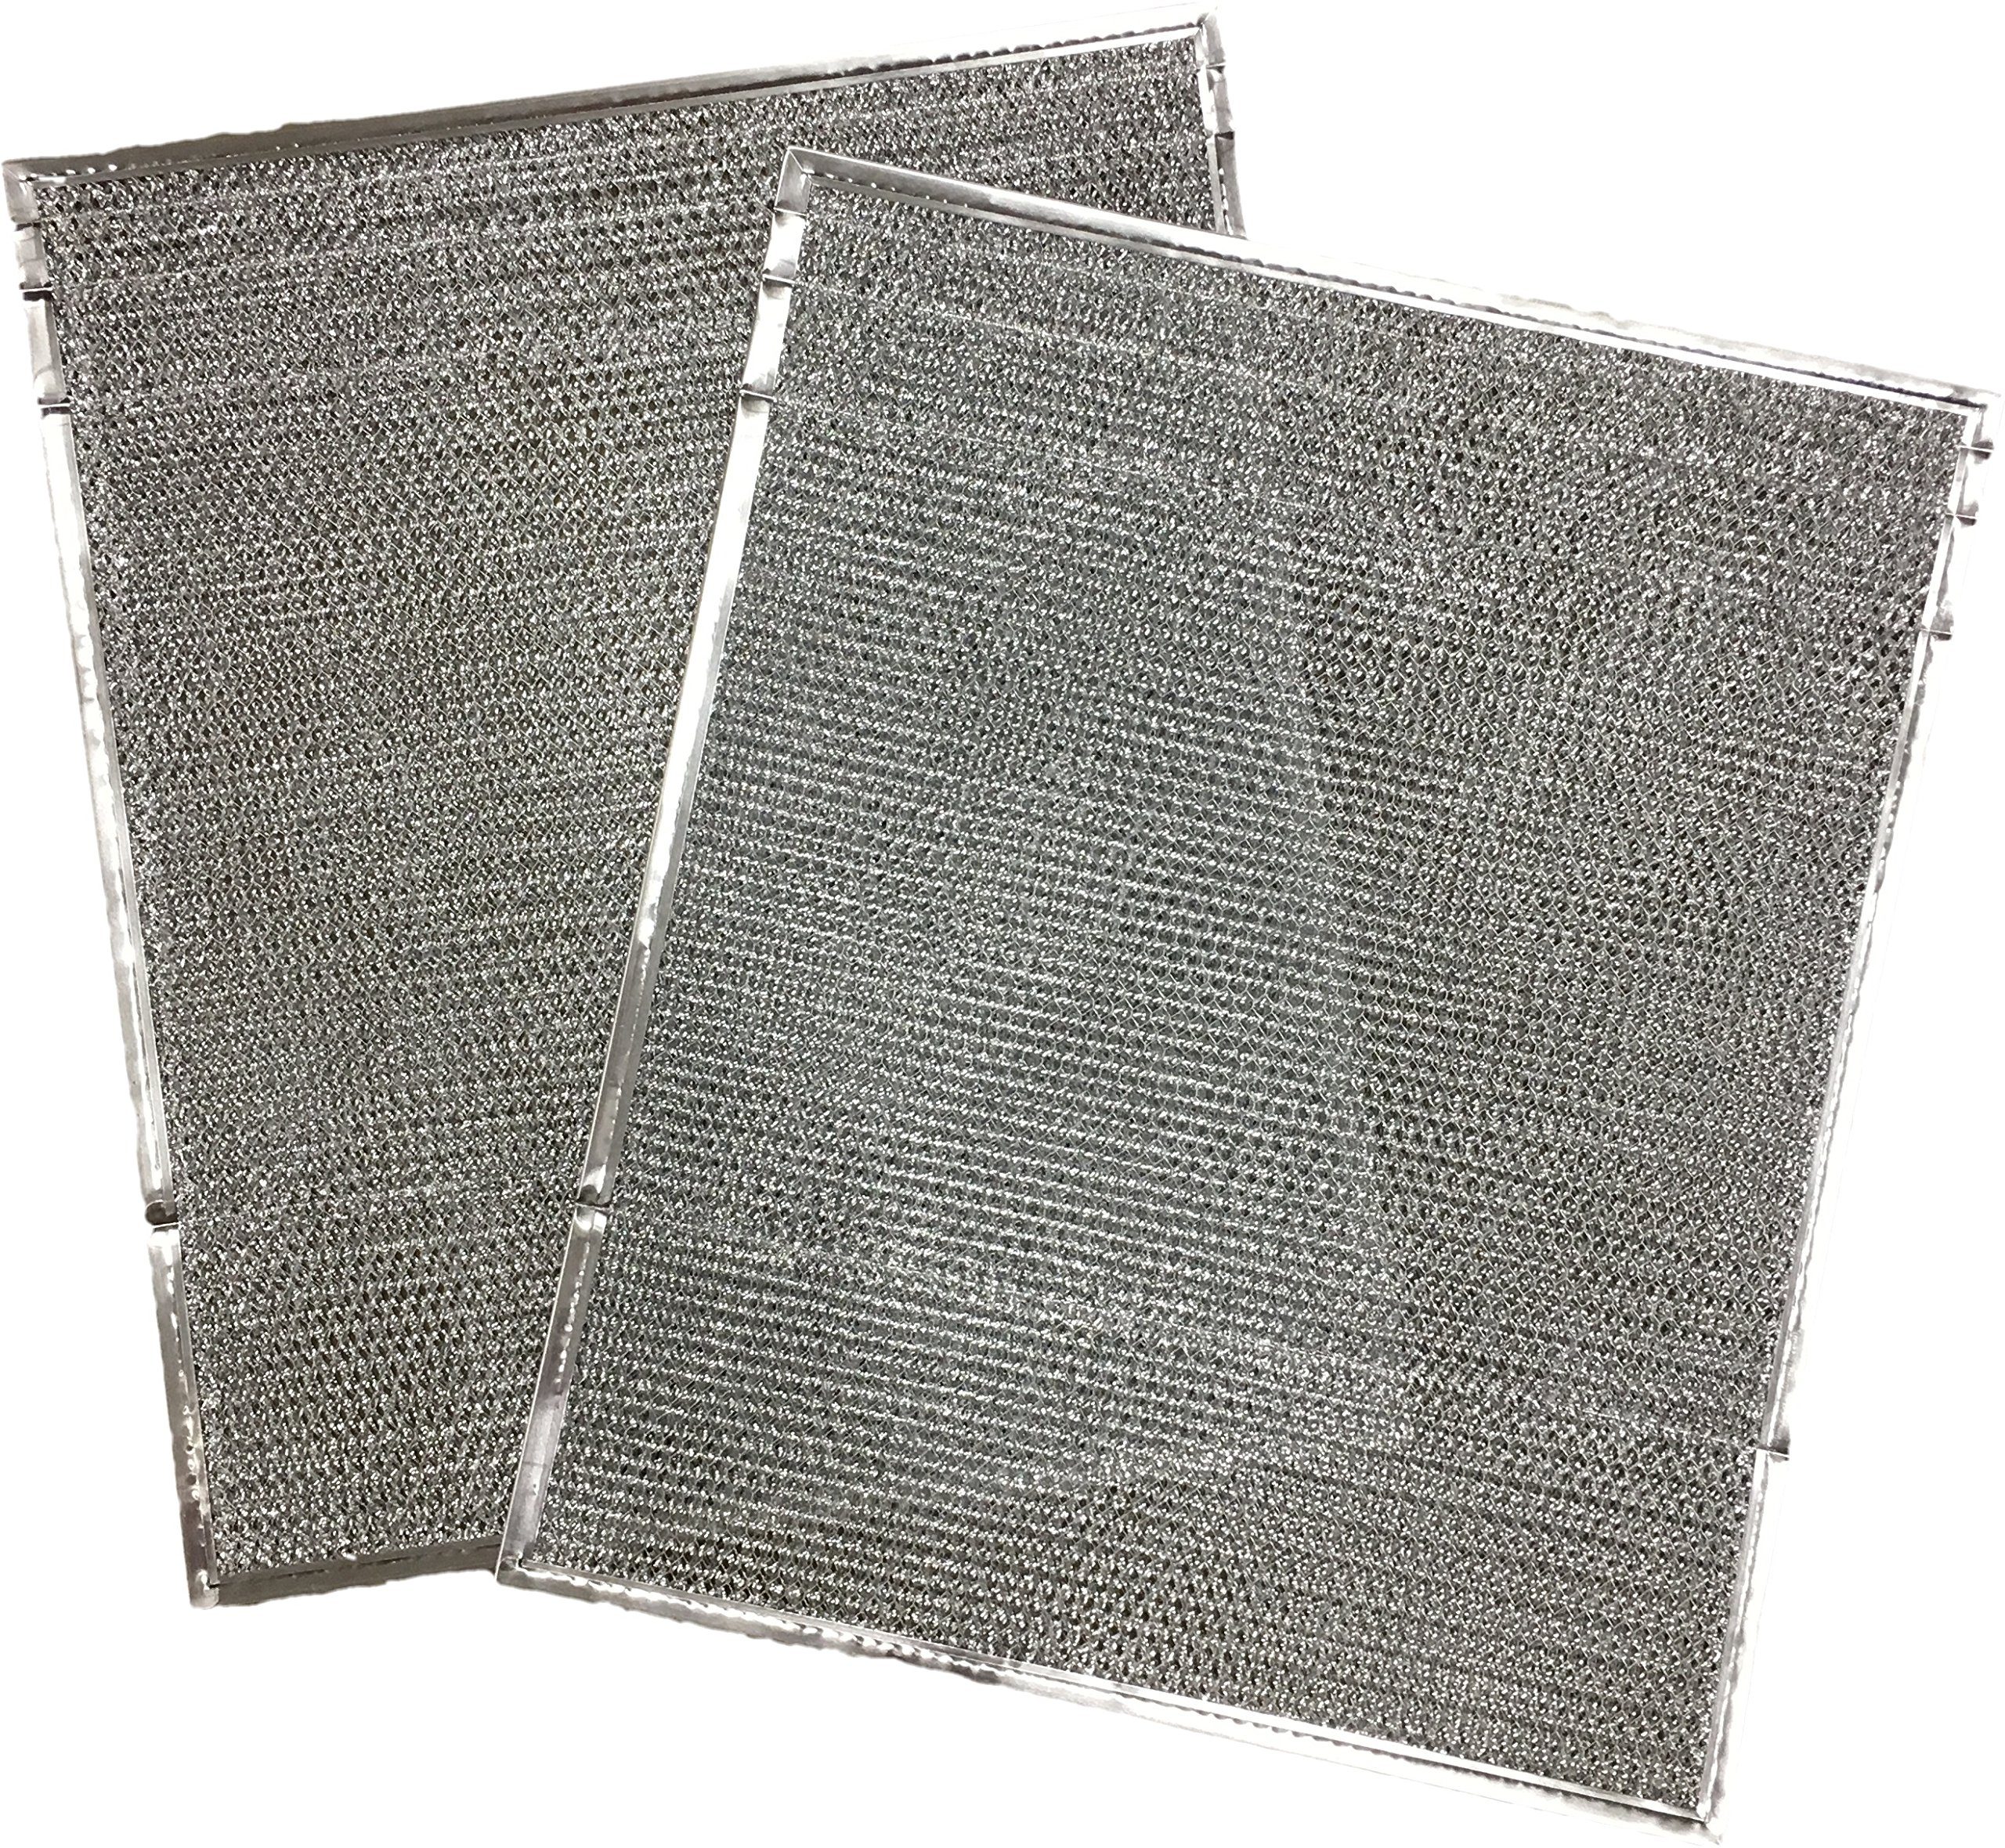 Duraflow Filtration 917763 Metal Mesh Filter, Fits Nordyne 917763 A-Coils, One Pair, 19'' H, 0.125'' W, 16'' L (Pack of 2)